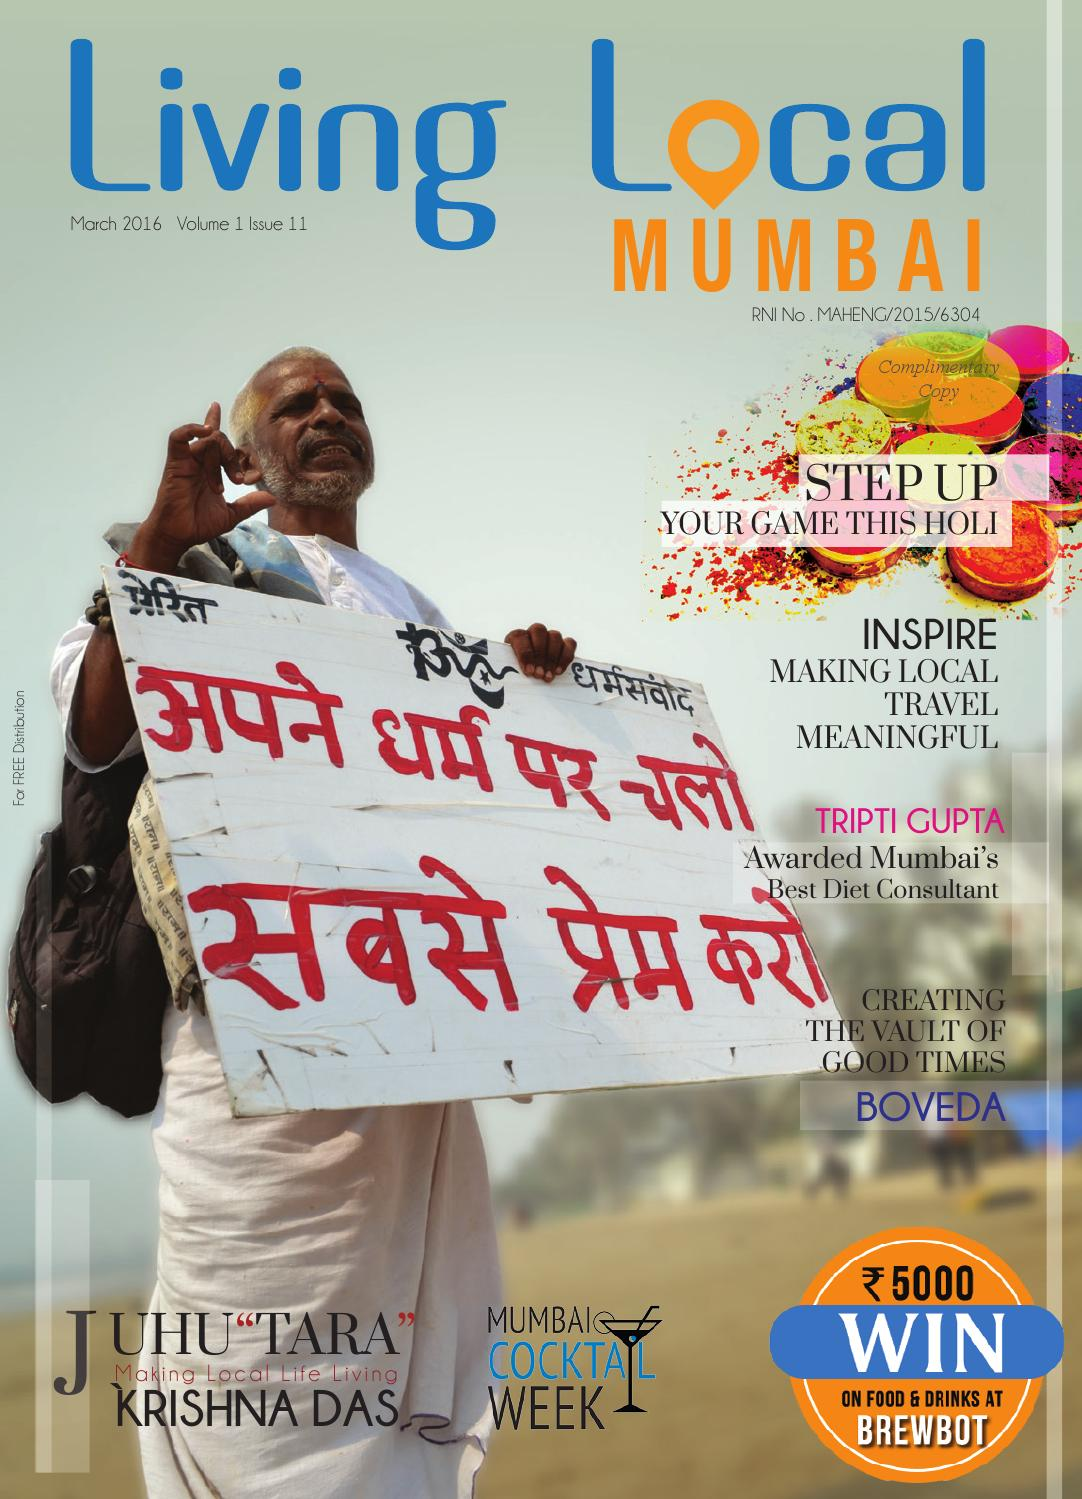 Living Local Mumbai (Andheri West Edition) by Living Local